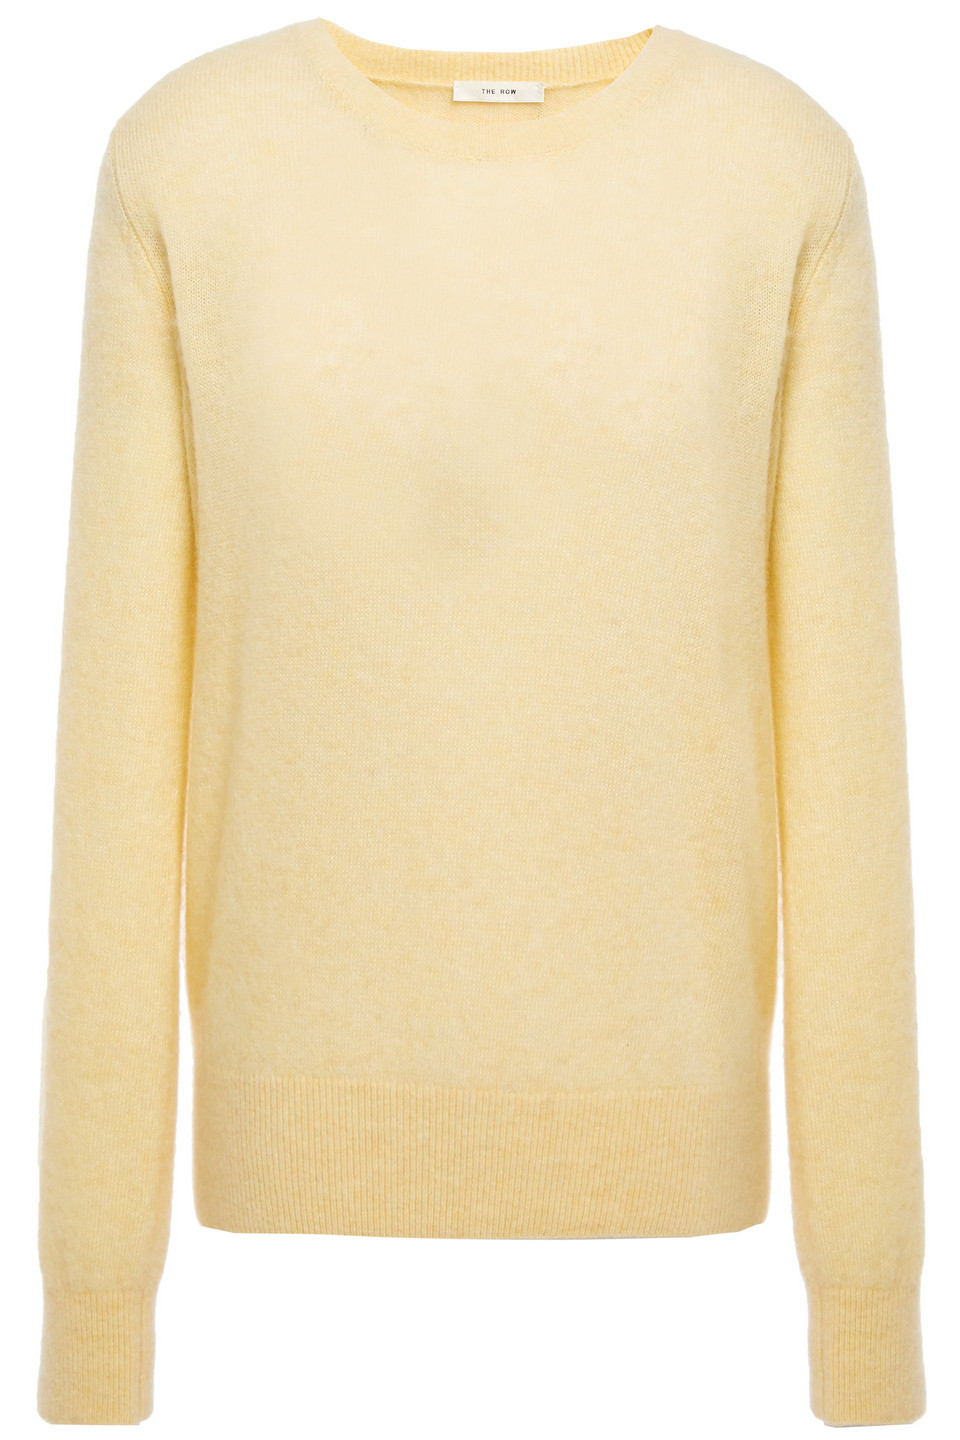 The Row | The Row Woman Minco Brushed Cashmere And Silk-blend Sweater Pastel Yellow | Clouty